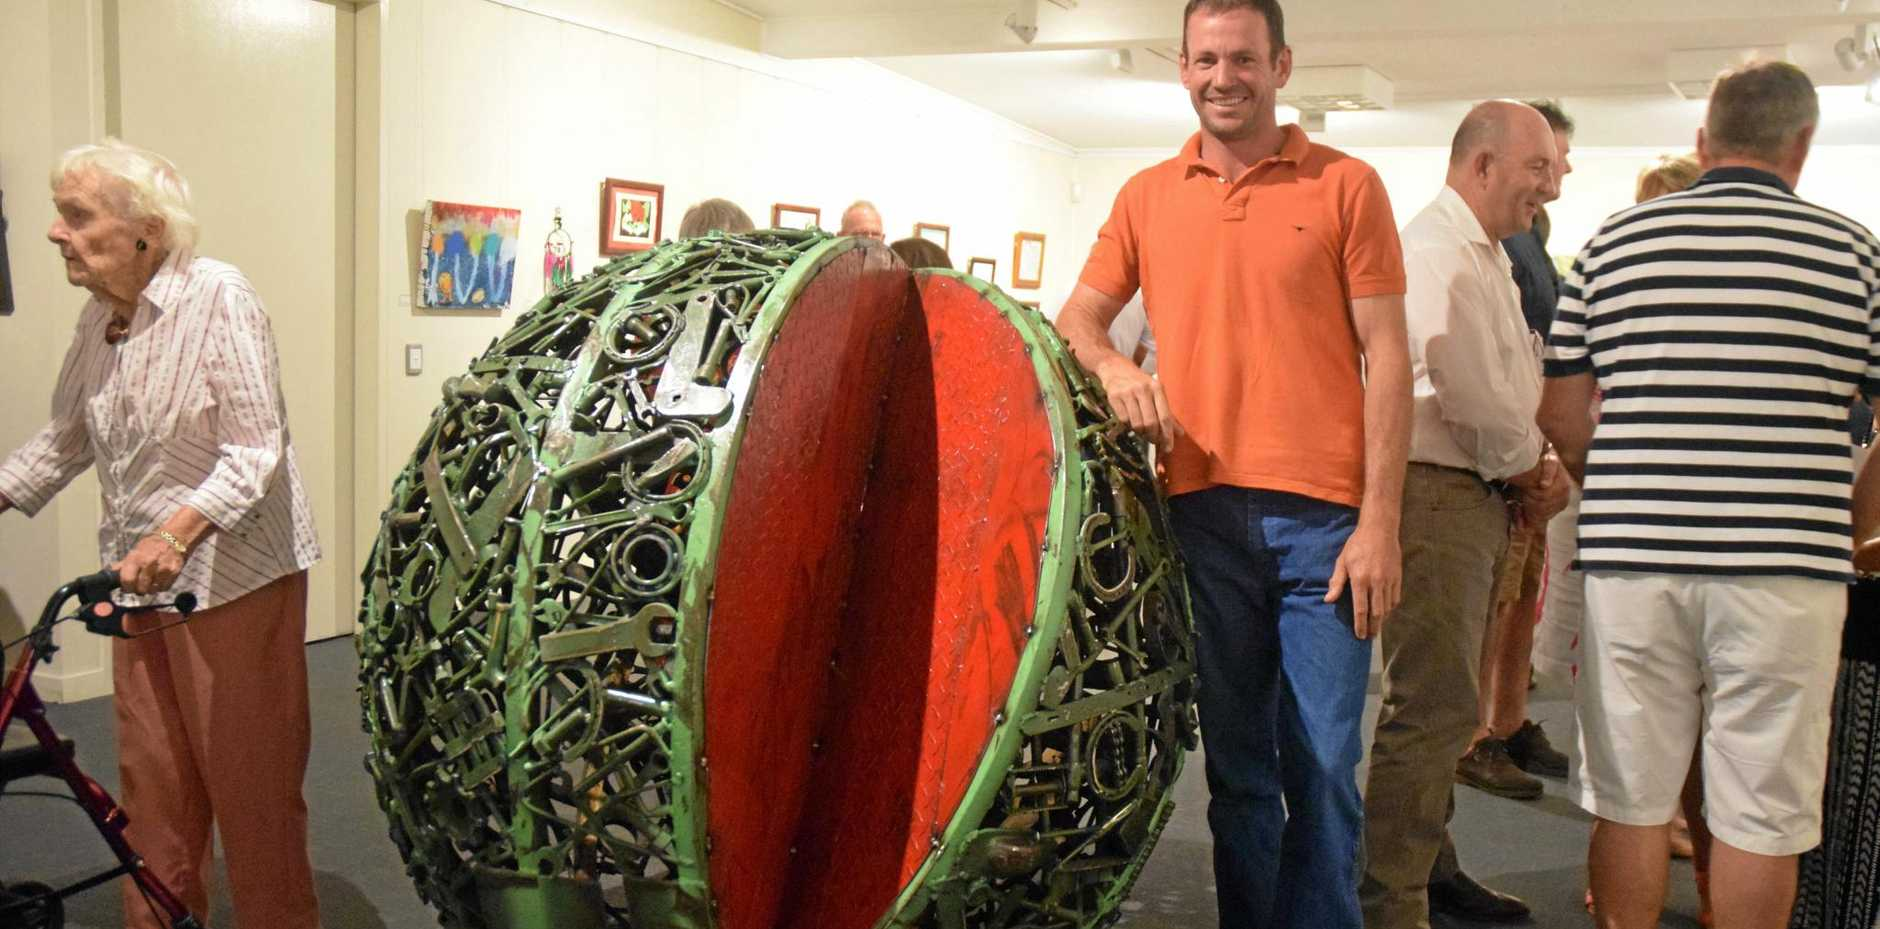 Chinchilla artist Dion Cross won the spatial construction category and the judge's praise at the Melon Festival Art Competition for